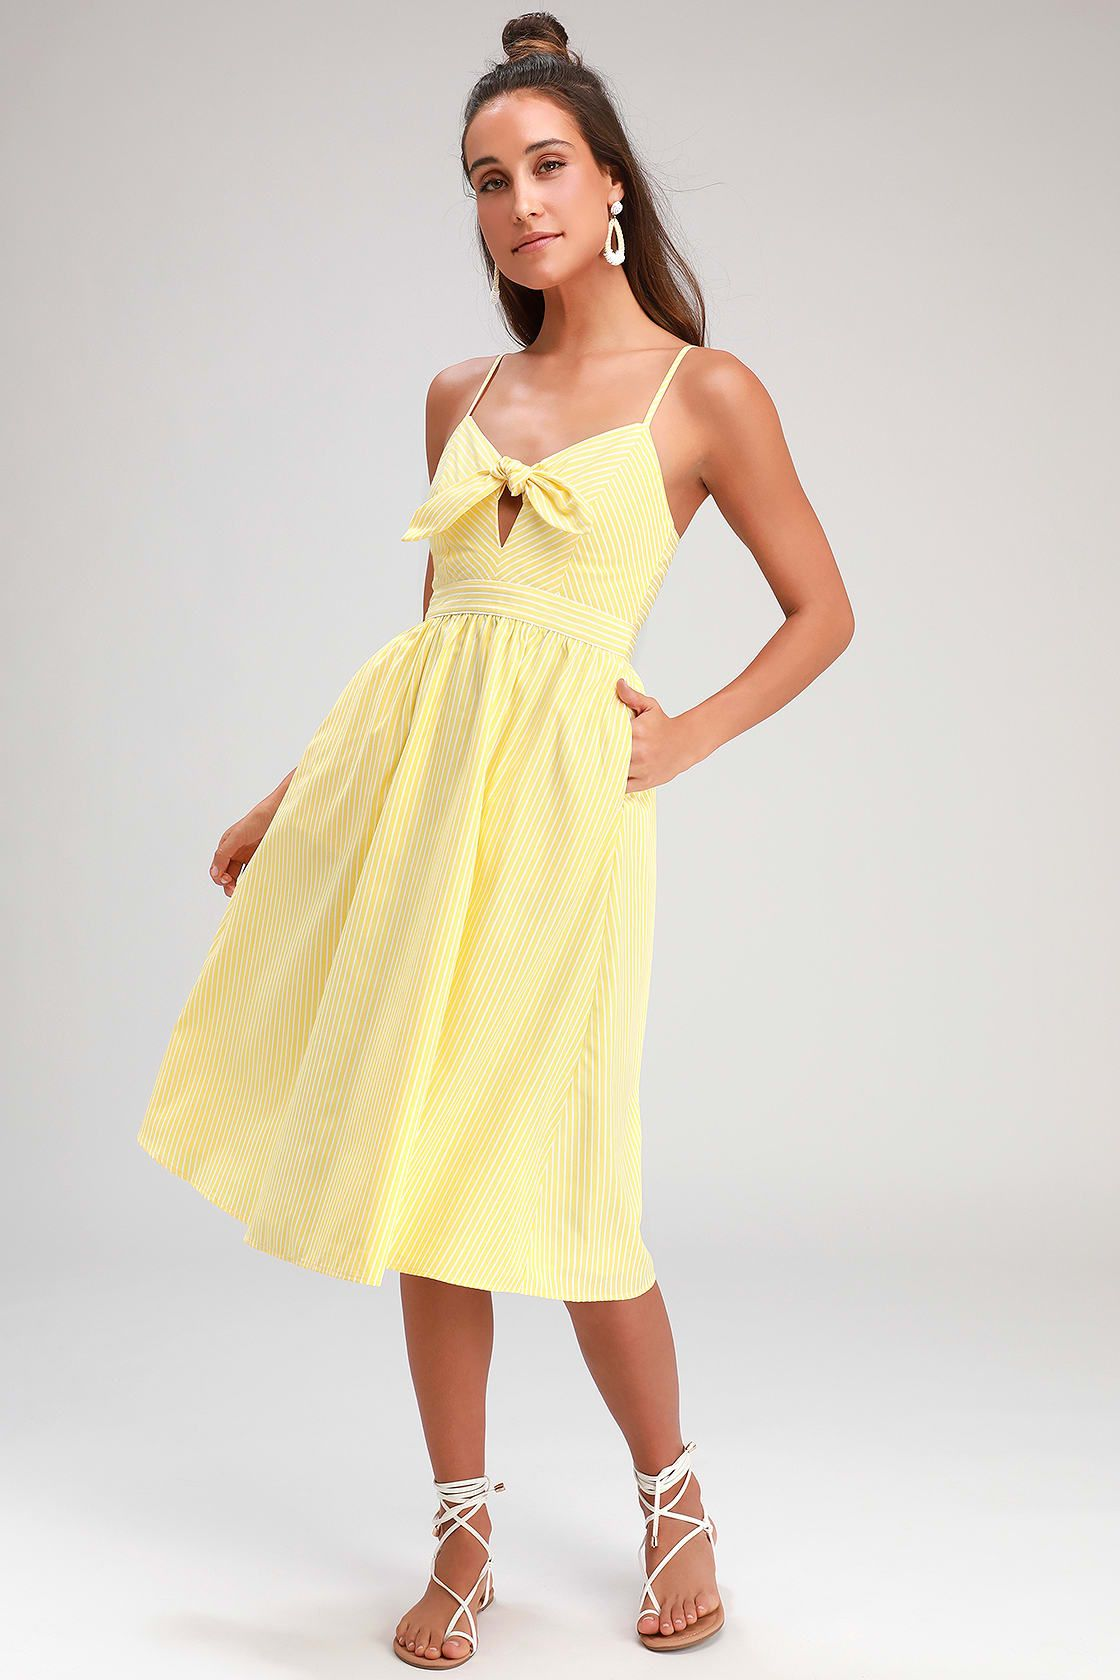 457aae88a54 Lulus | Joyful Days Yellow Striped Knotted Front Midi Dress | Size ...